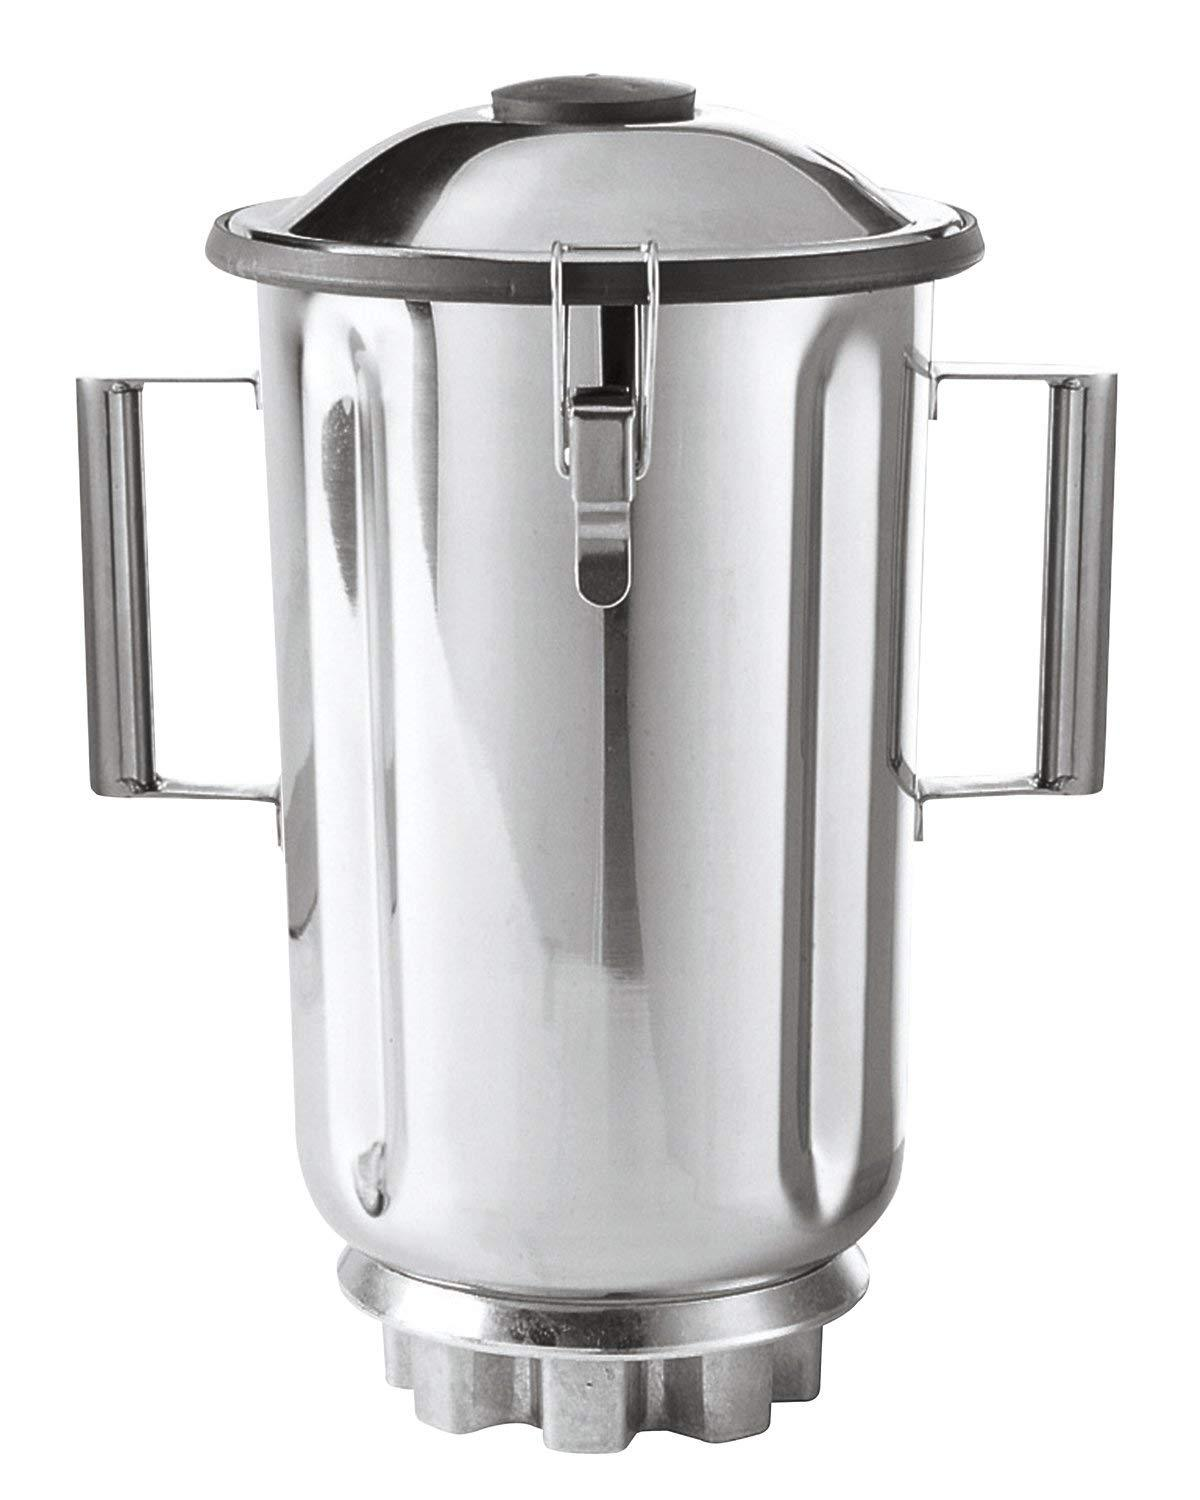 Hamilton Beach 990 Blender Container - 1 Gallon, Stainless Steel